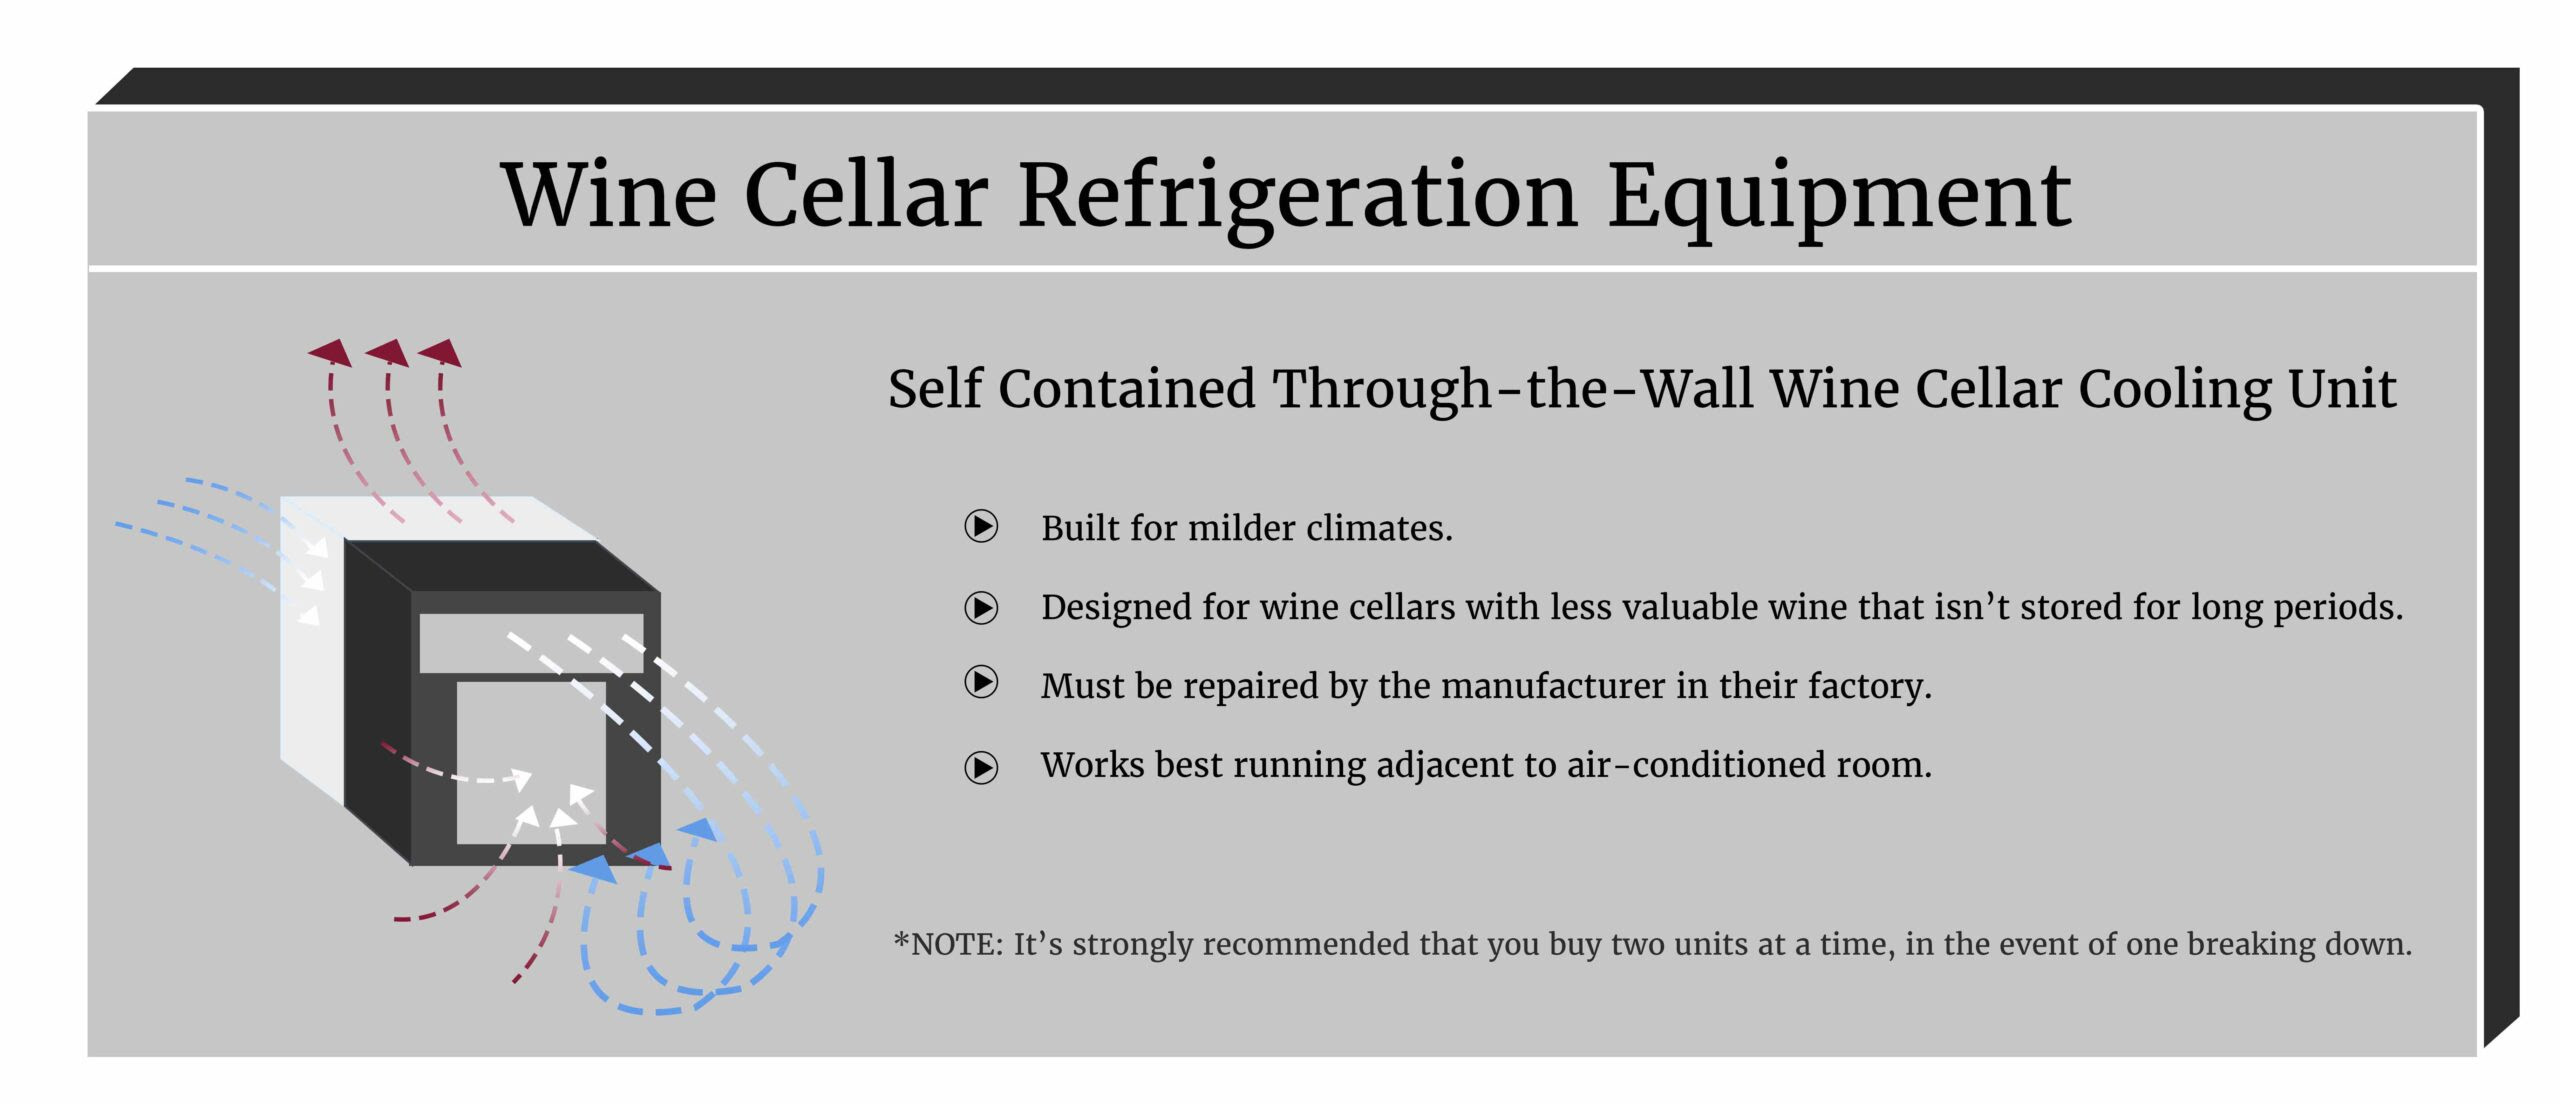 Self Contained Through The Wall Wine Cellar Cooling Units